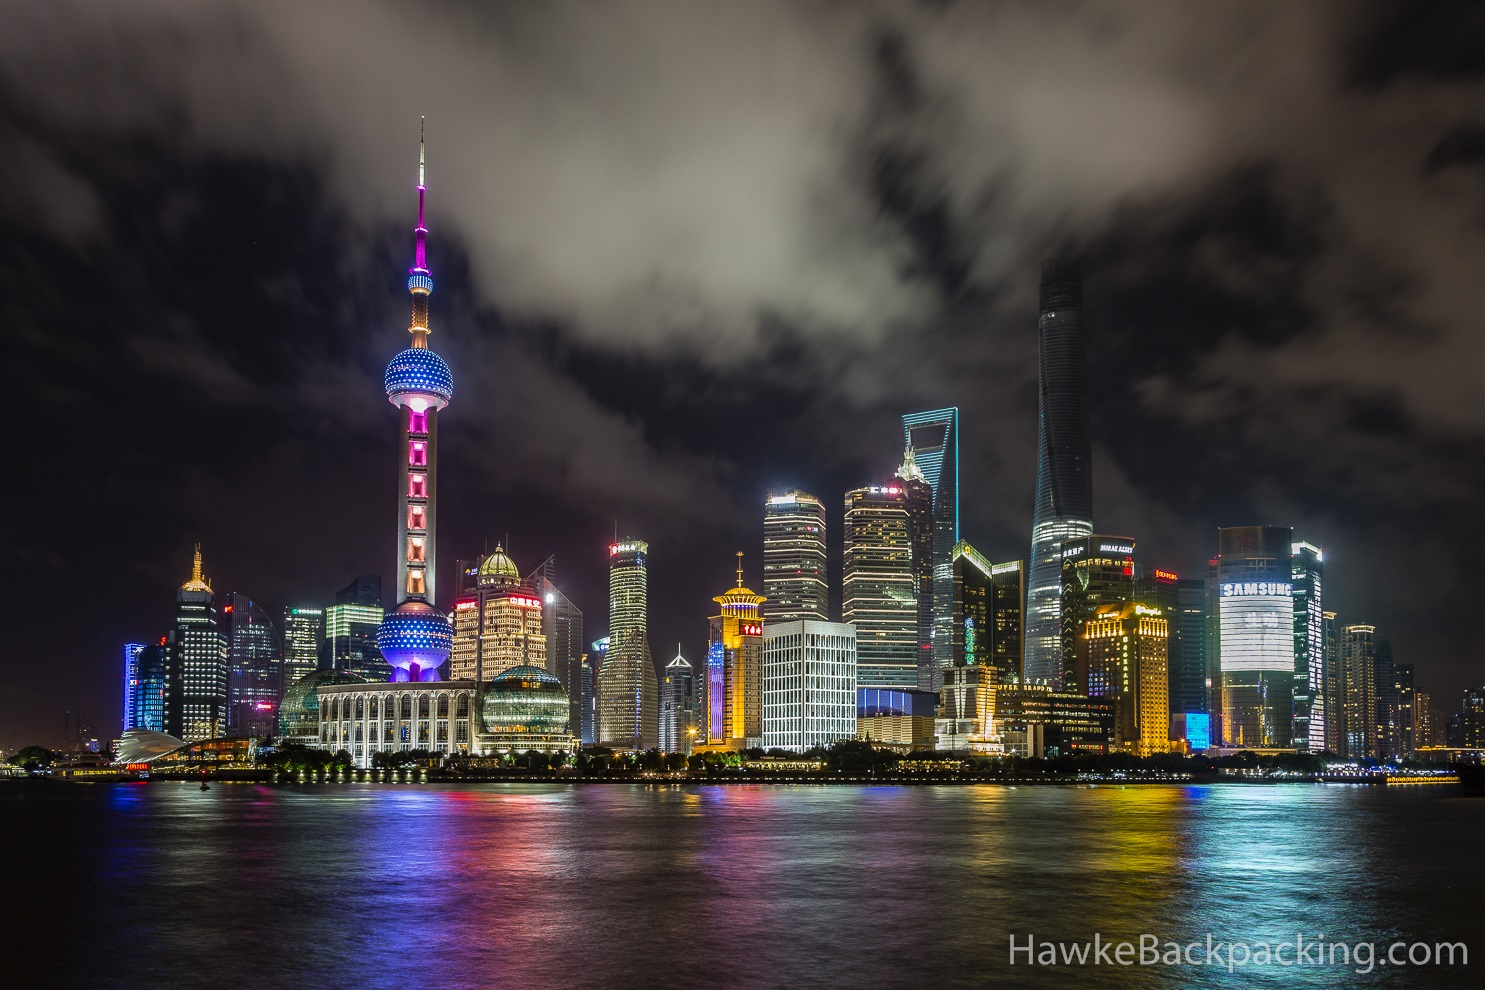 Shanghai at Night - HawkeBackpacking.com